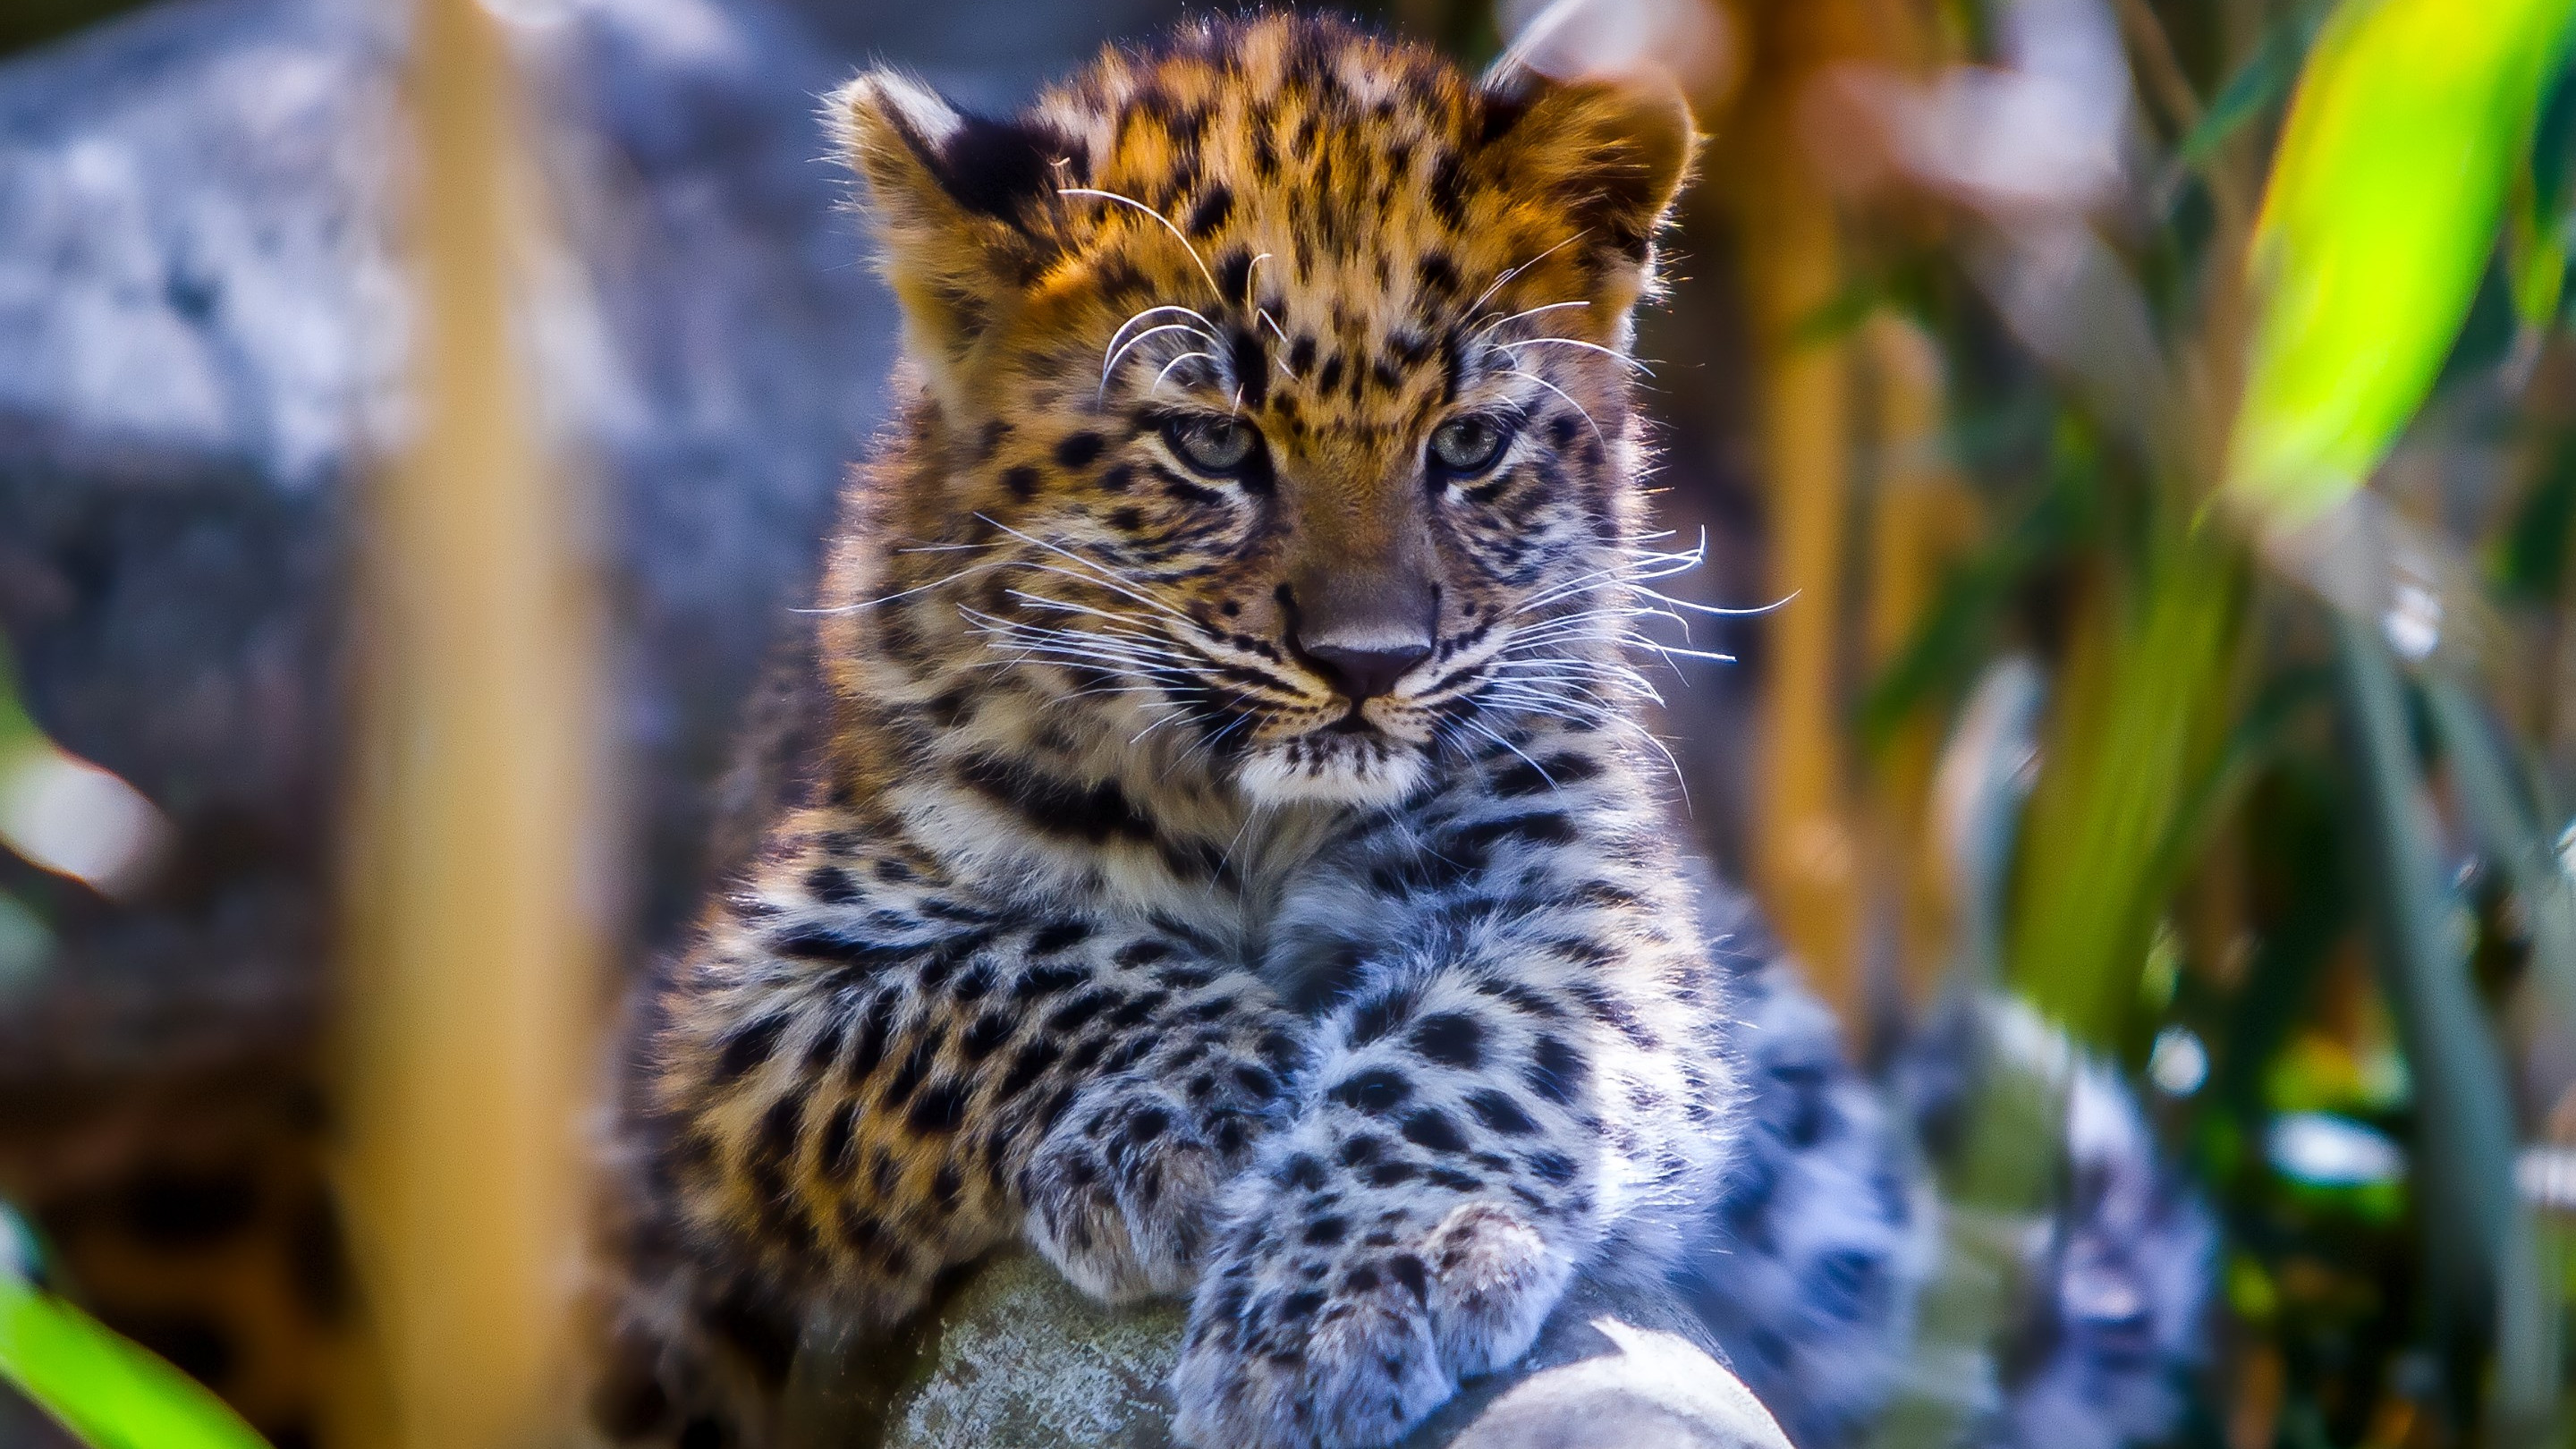 Leopard cub wallpaper 2880x1620